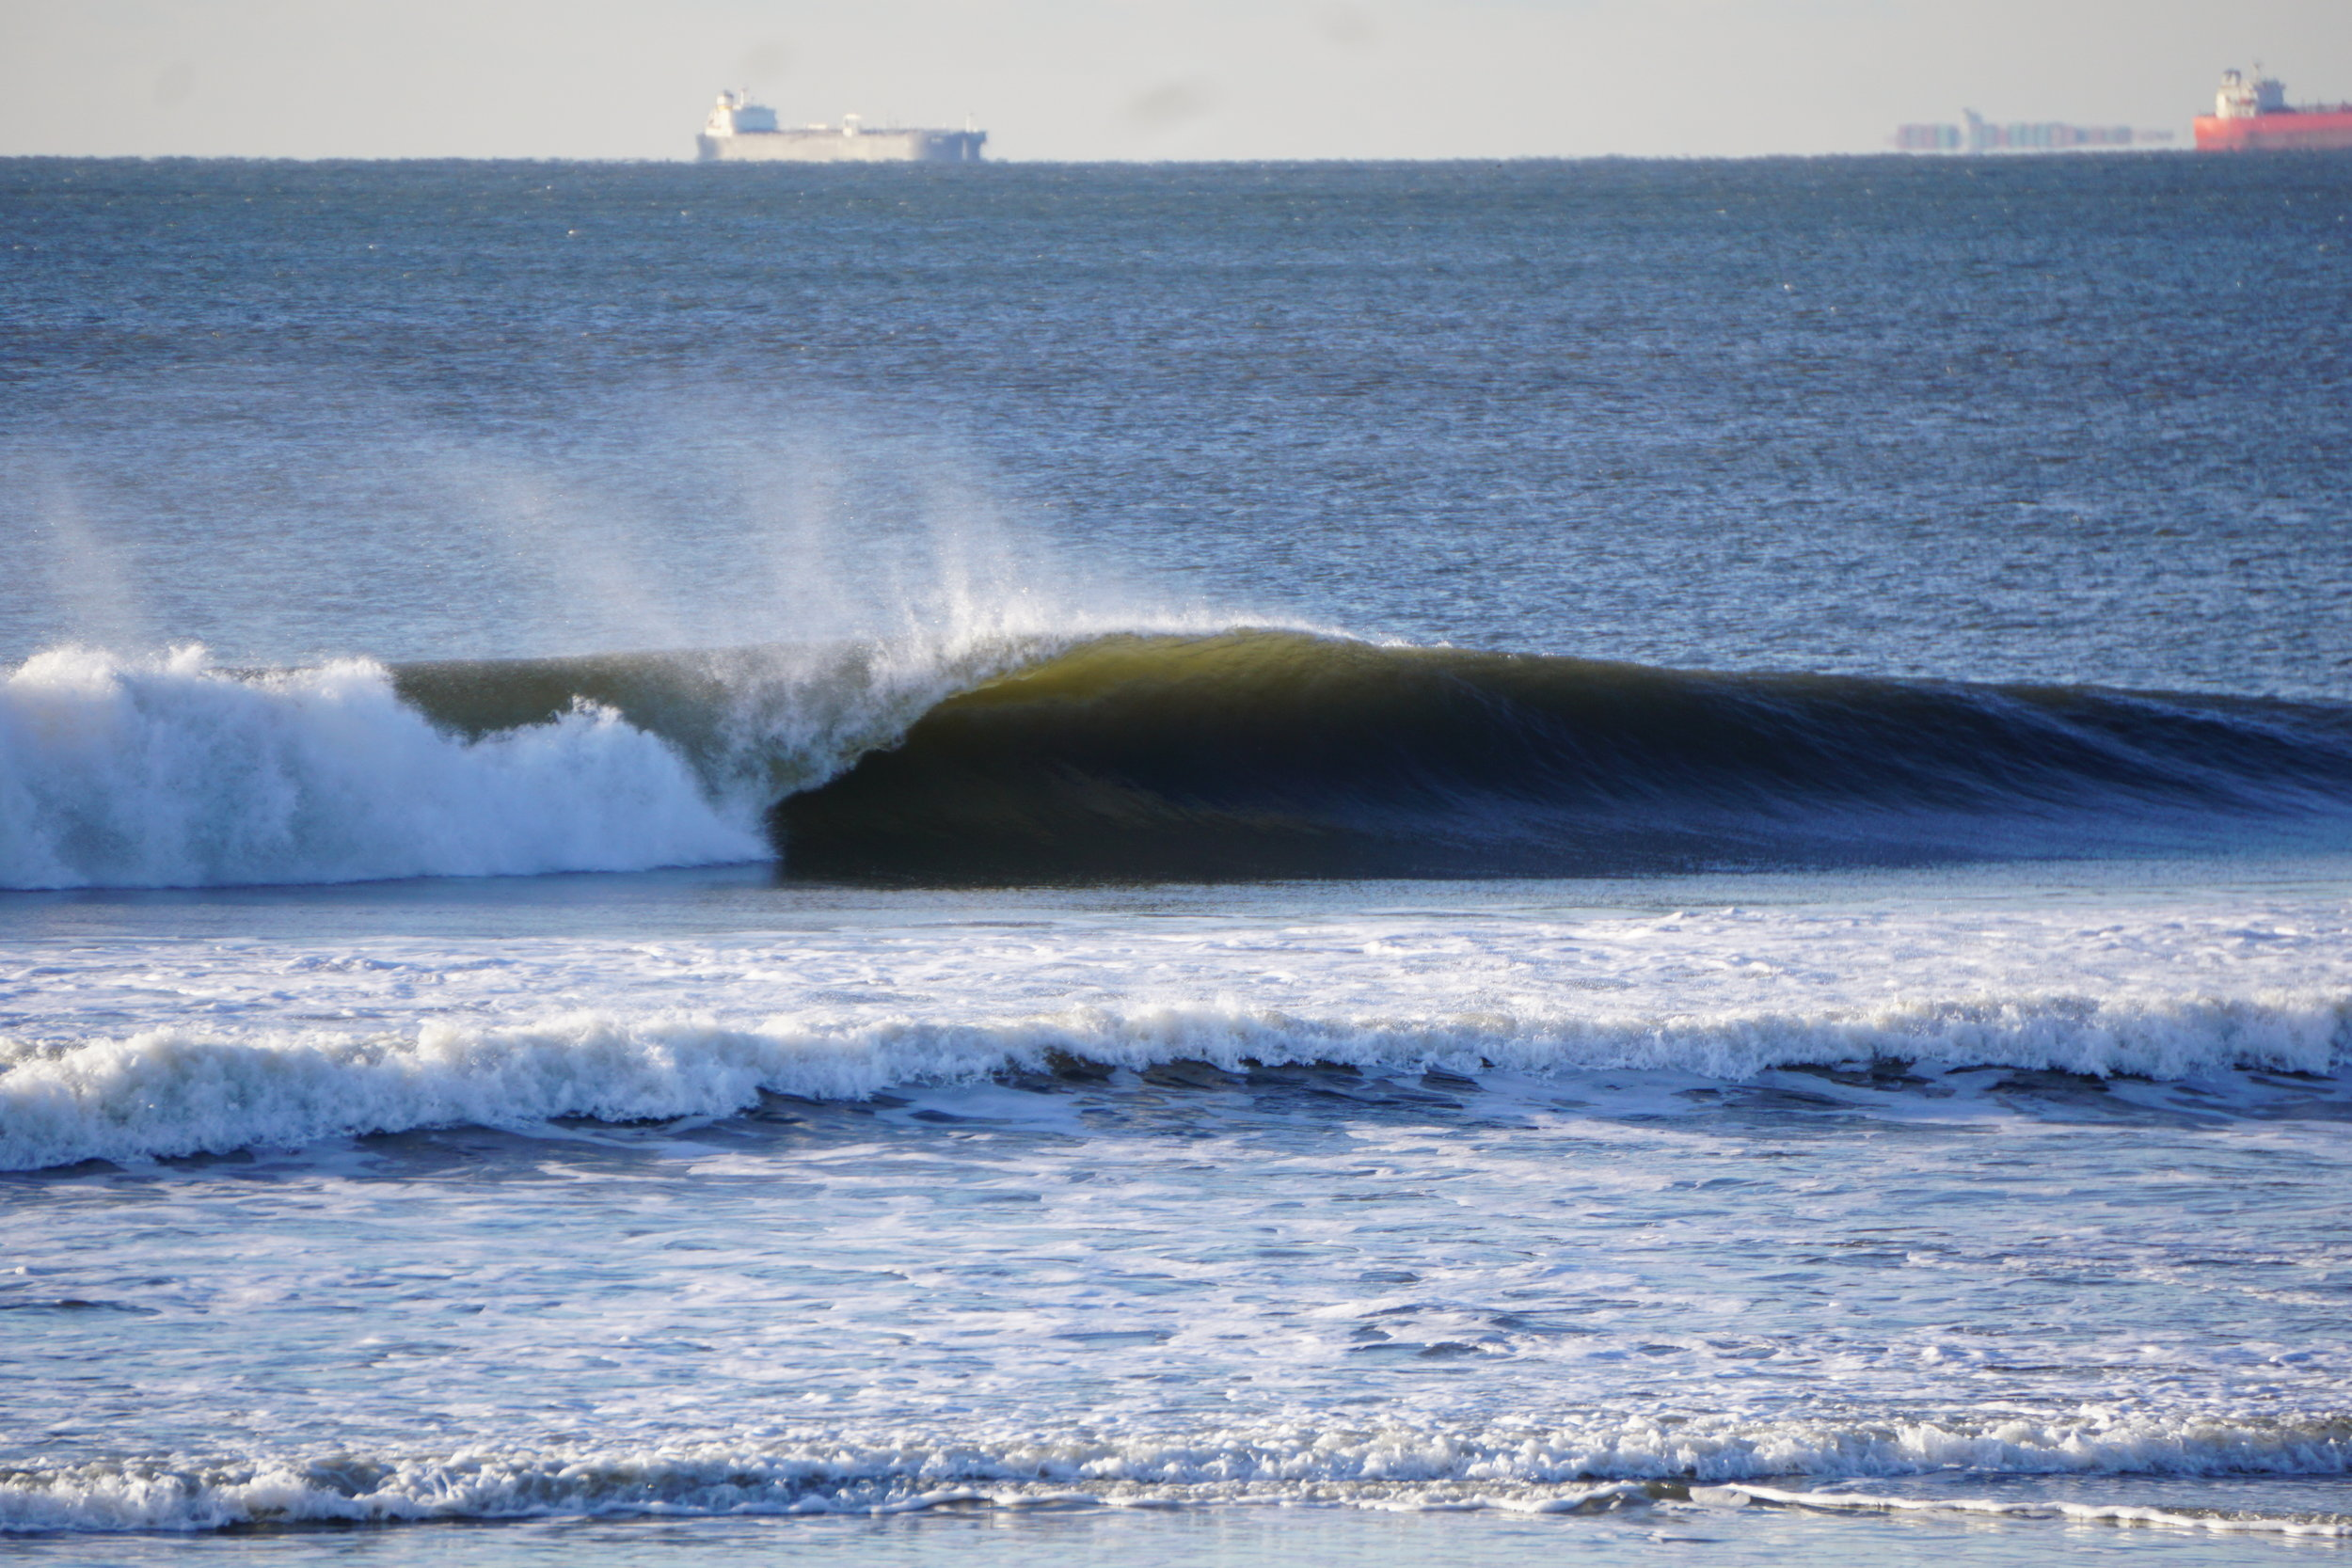 A drainer from last February. Don't let lack of solid gear keep you away from great winter surf. Pic: Dion Mattison